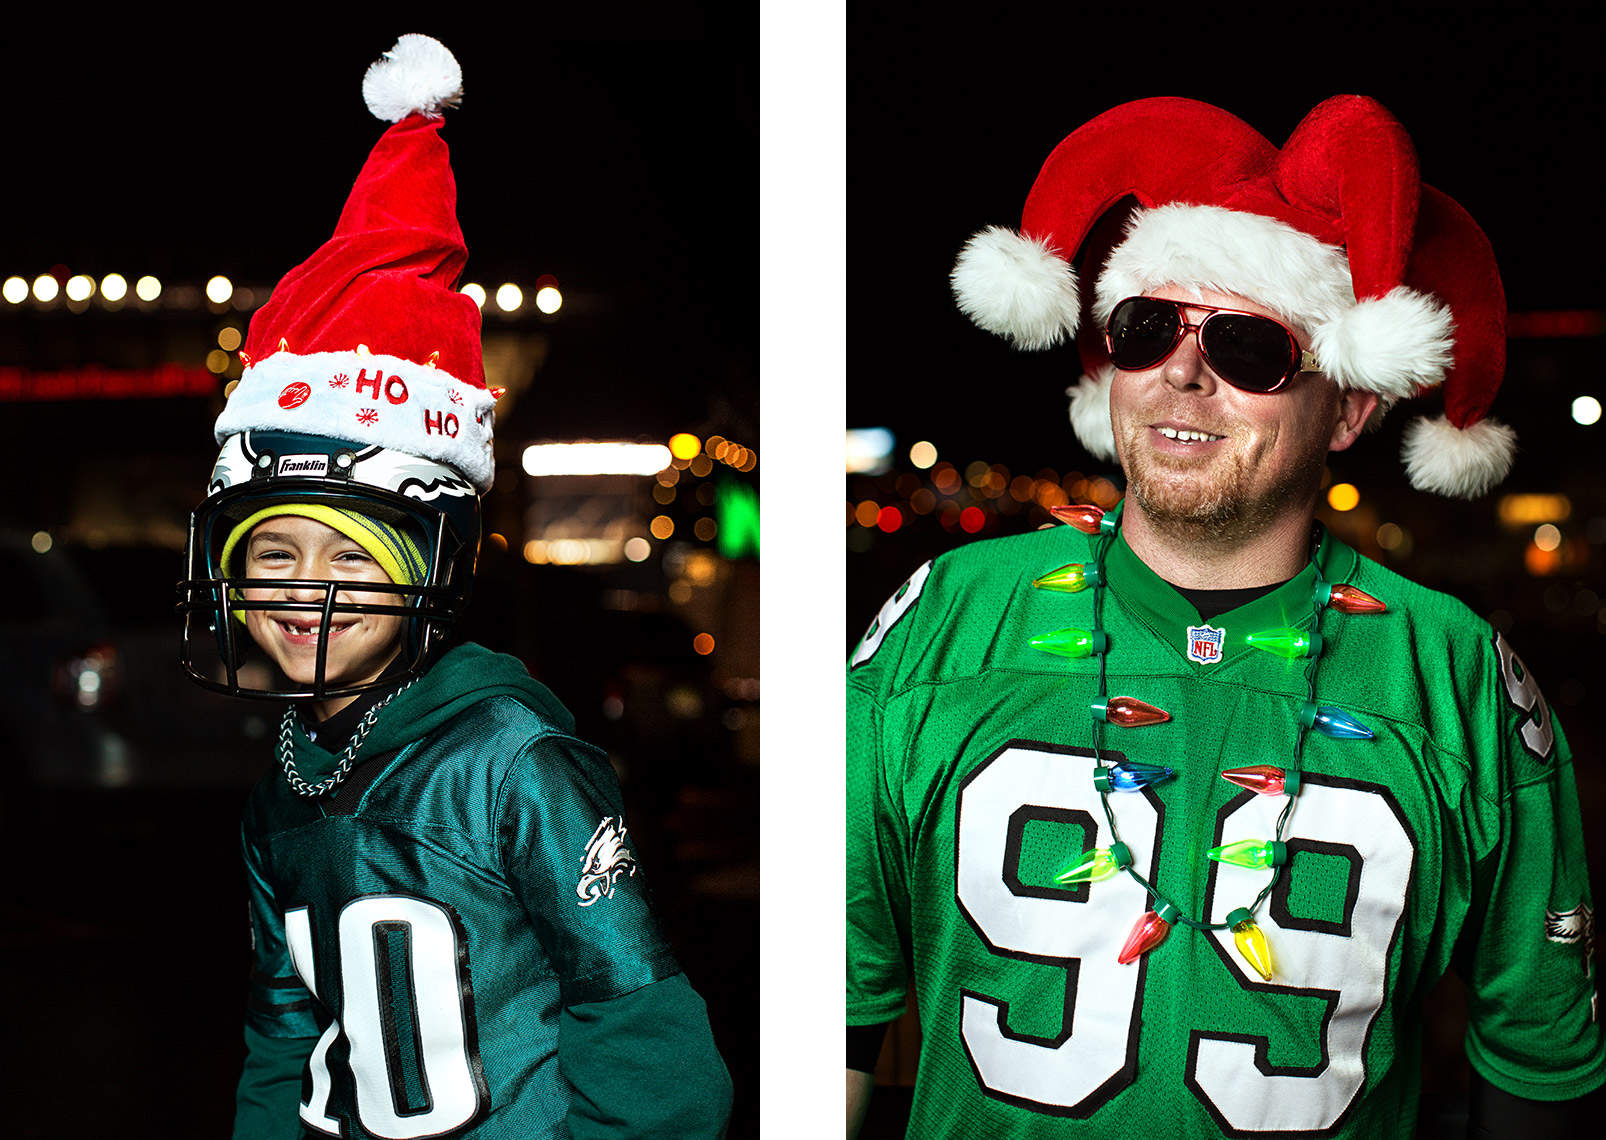 Philadelphia Photographer STEVE BOYLE - Philadelphia Eagles Fans - NFL Football